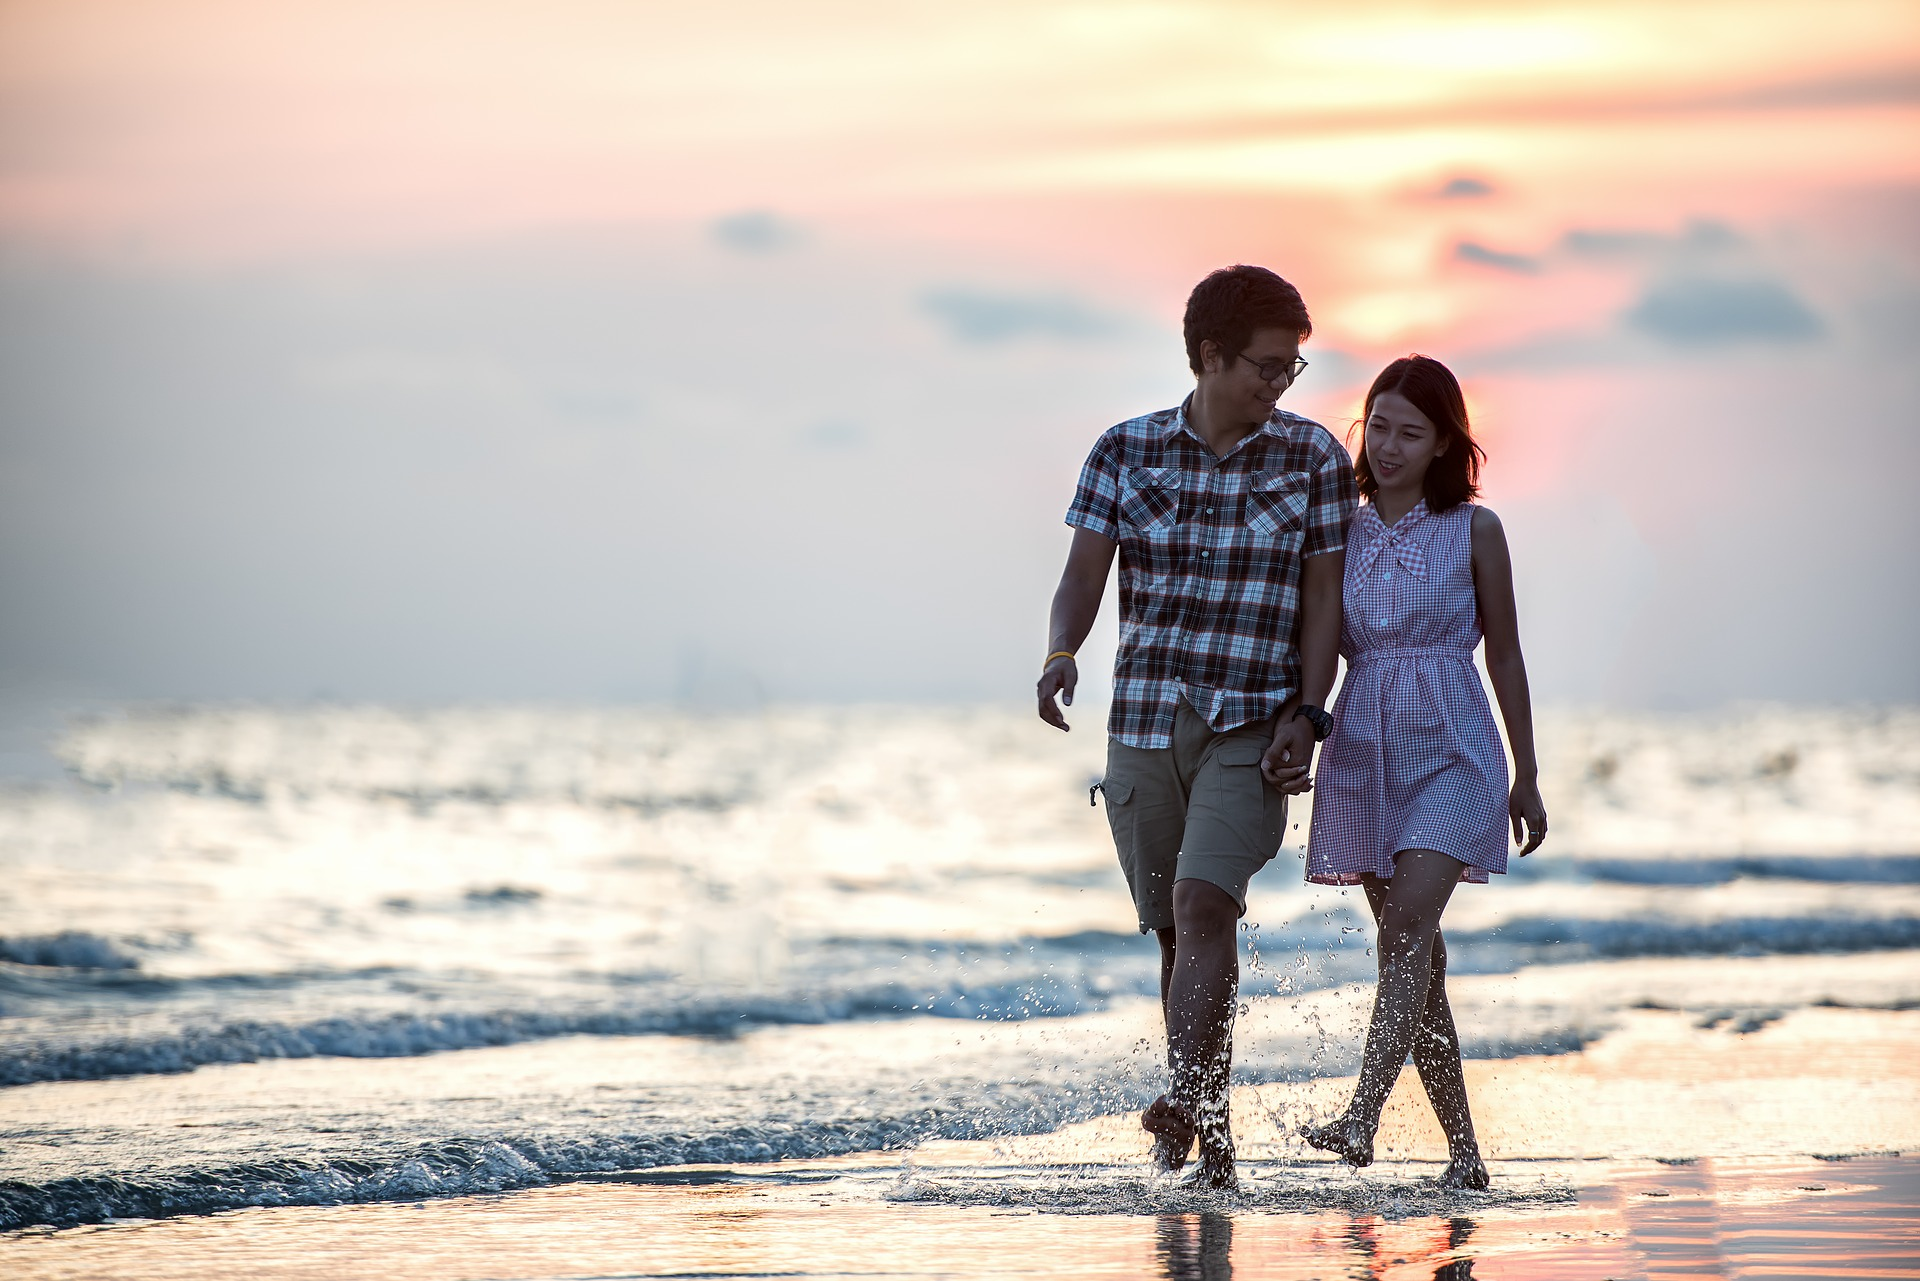 Asian couple walking on the beach at sunset